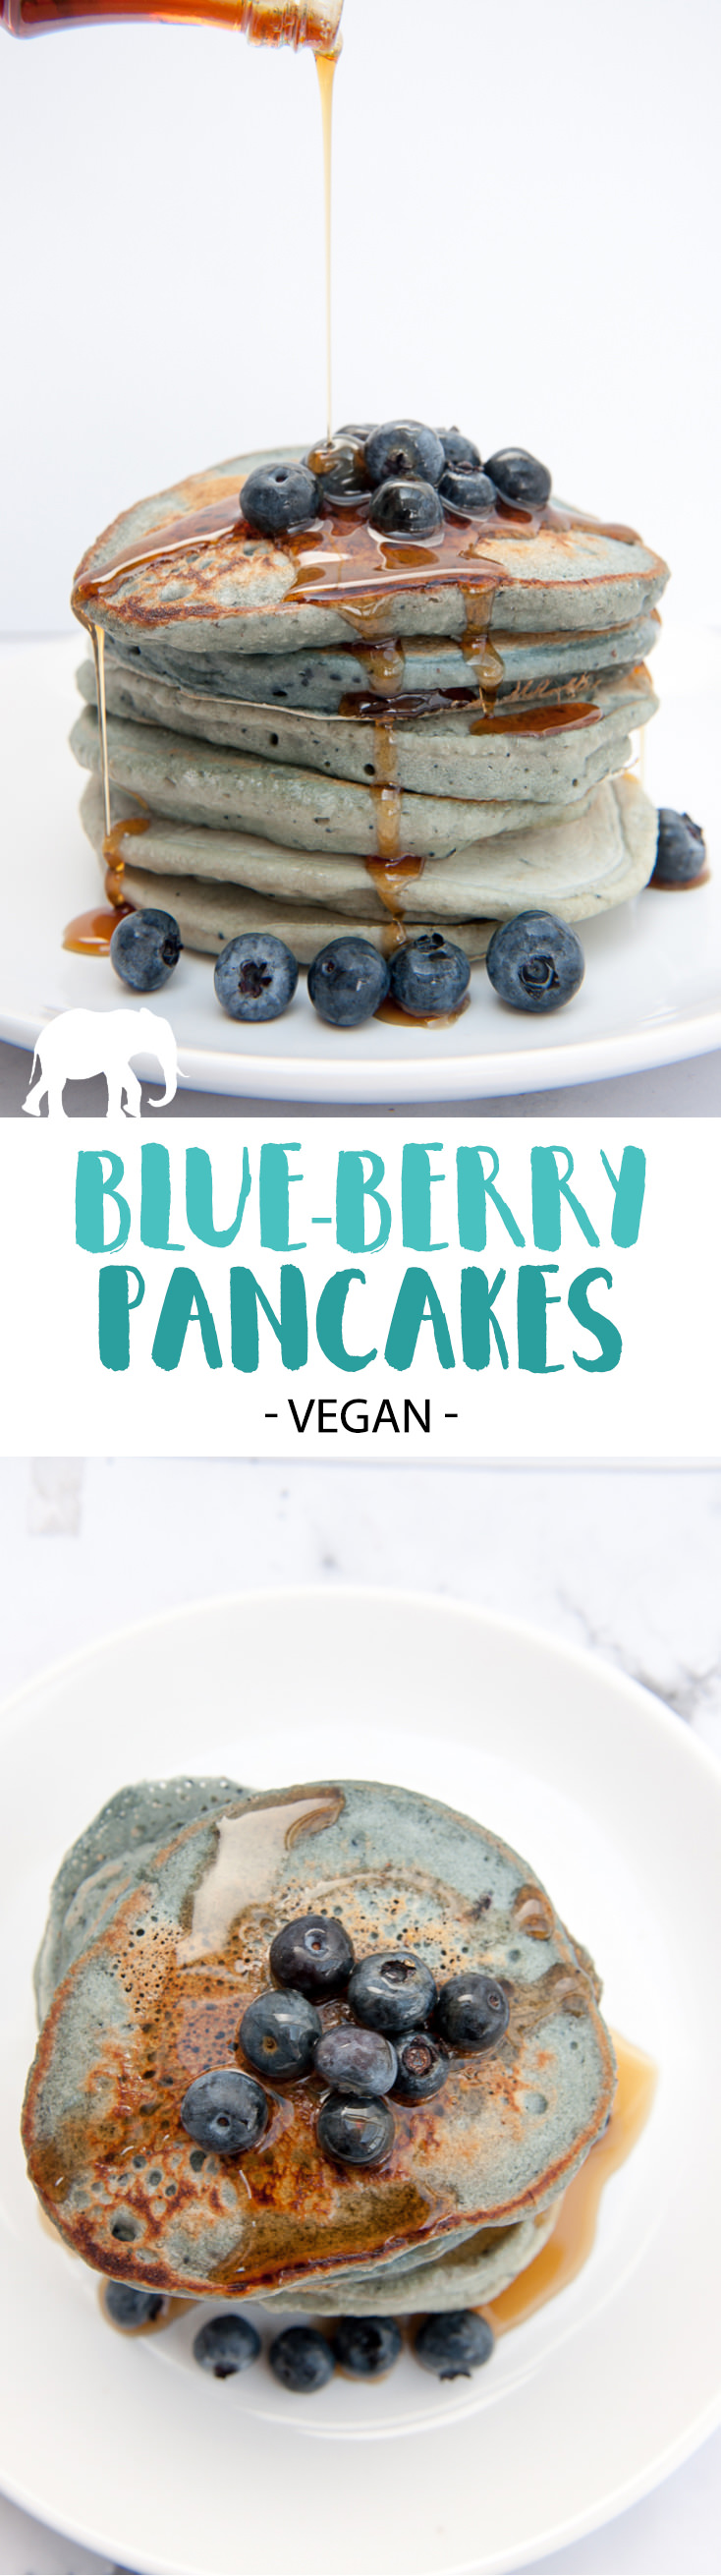 Vegan Blue-Berry Pancakes - These naturally colored pancakes are perfect for kids!   ElephantasticVegan.com #vegan #blueberry #pancakes #breakfast #kidfriendly